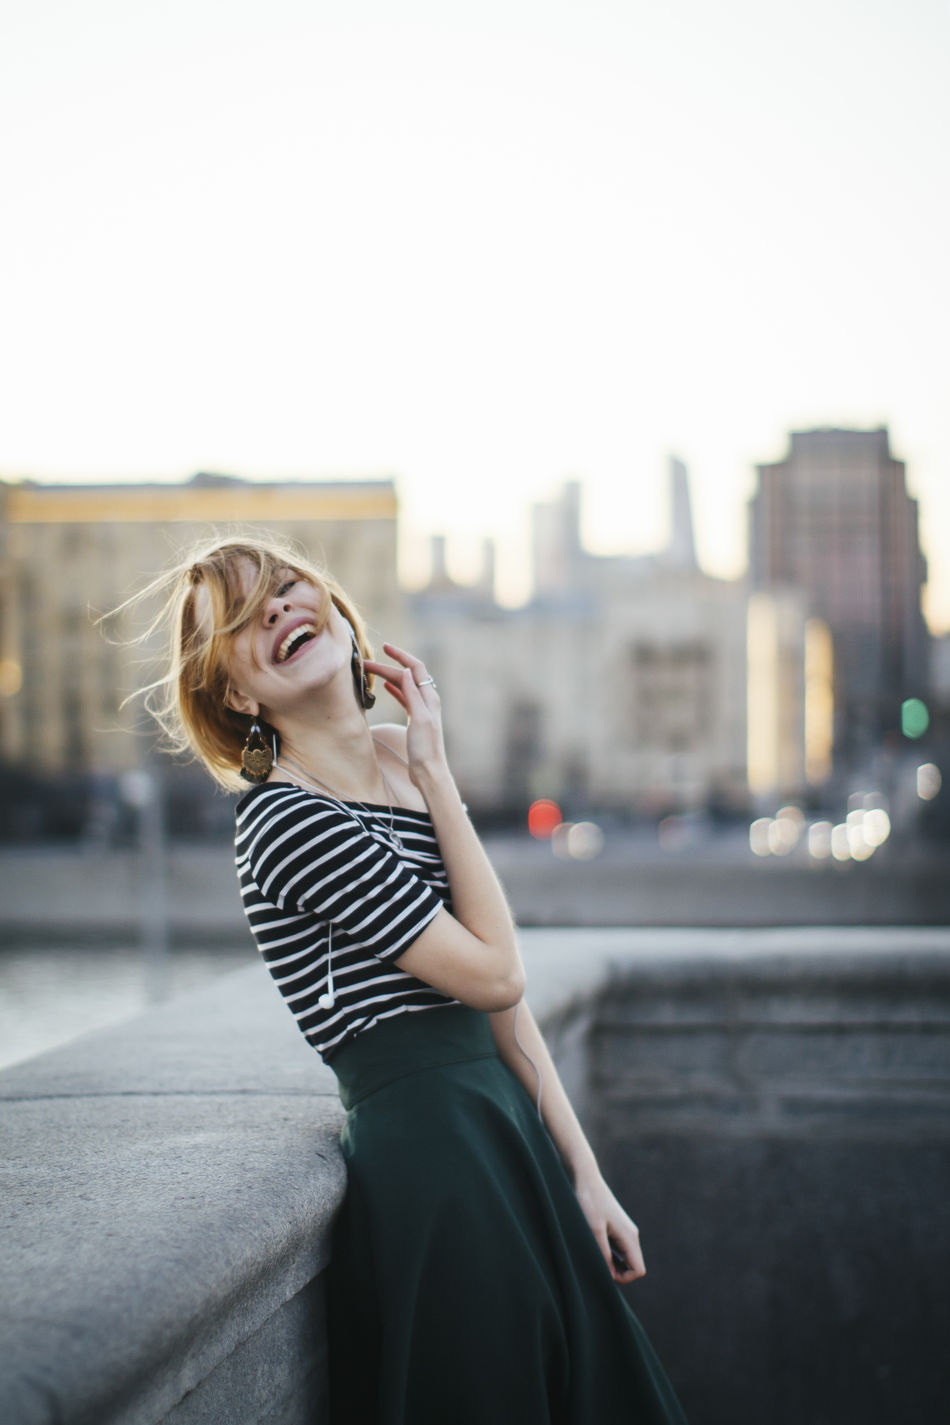 Beautiful stock photos of haare, 16-17 Years, Casual Clothing, Caucasian Ethnicity, Cheerful